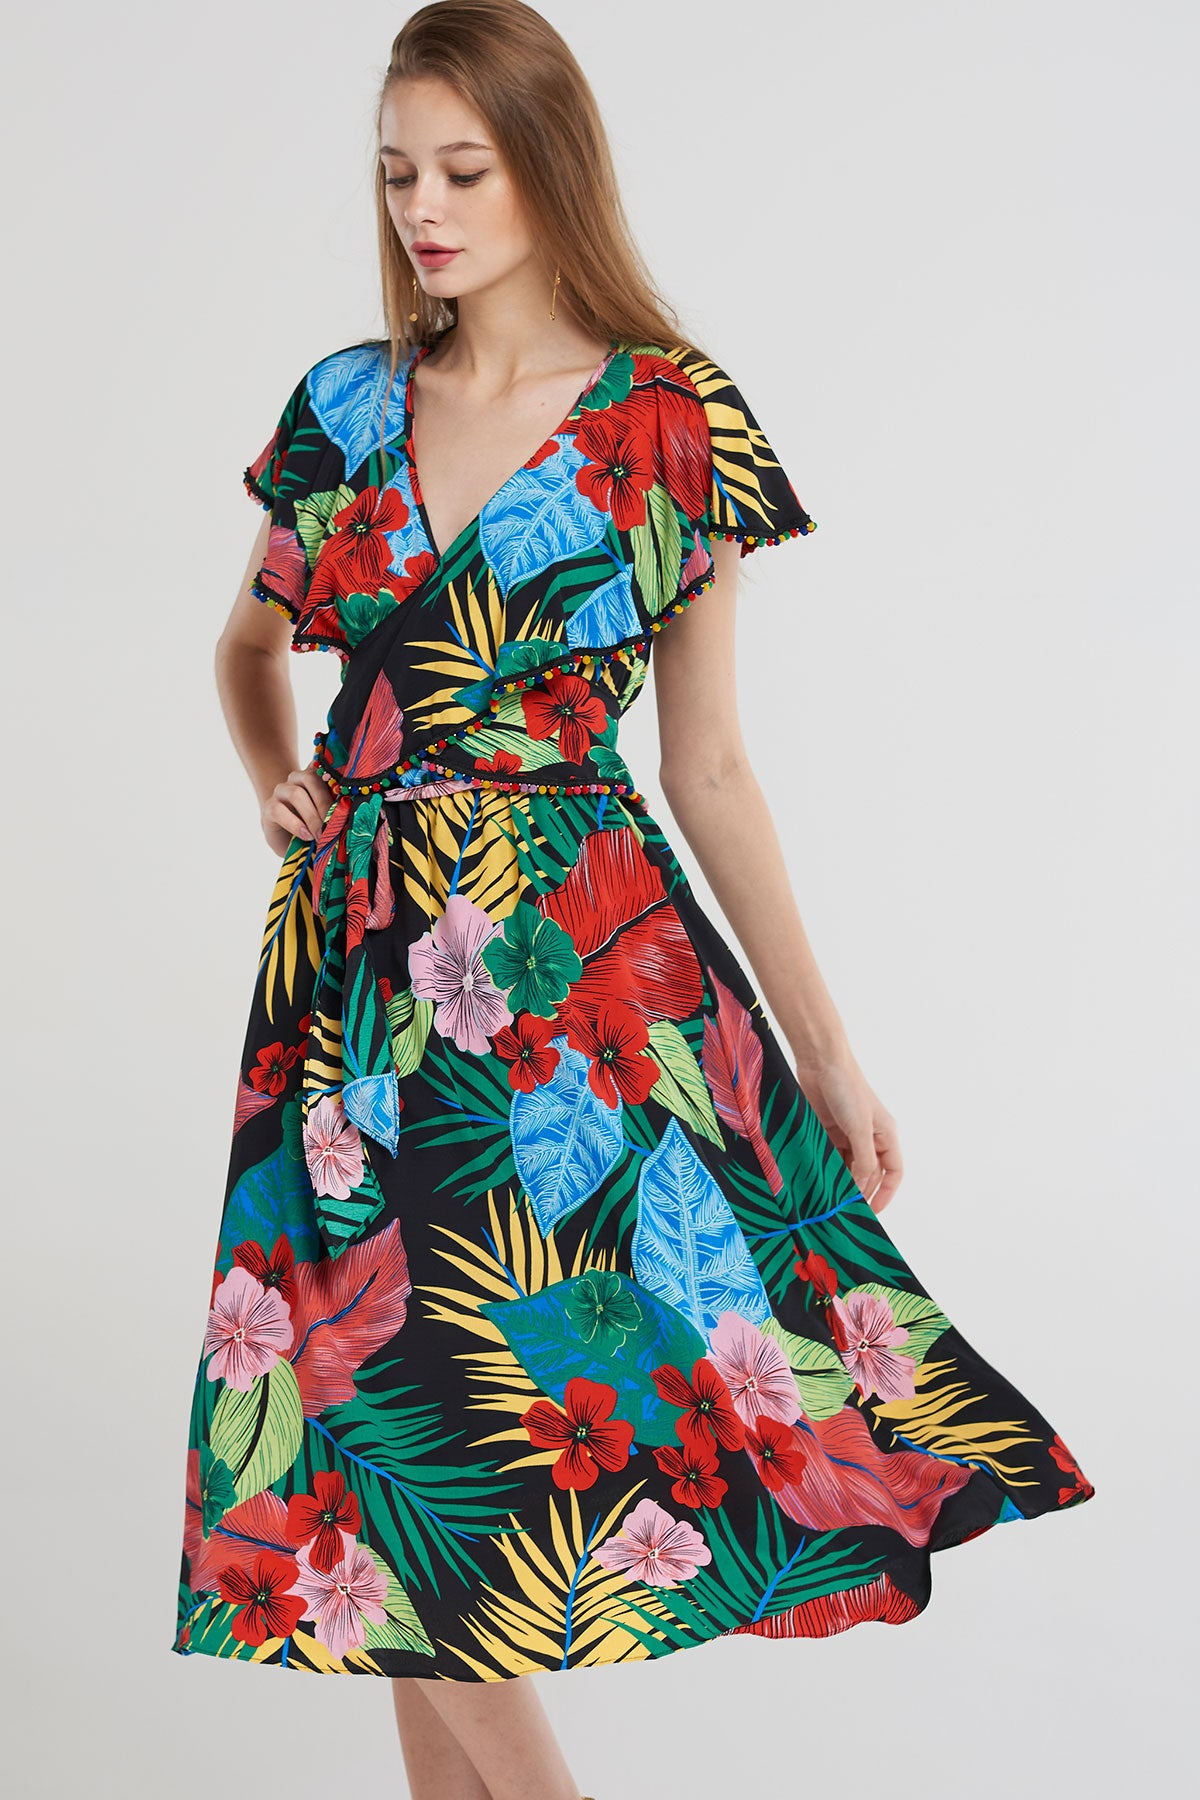 Emmie Colorful Palm Tree Dress-Black